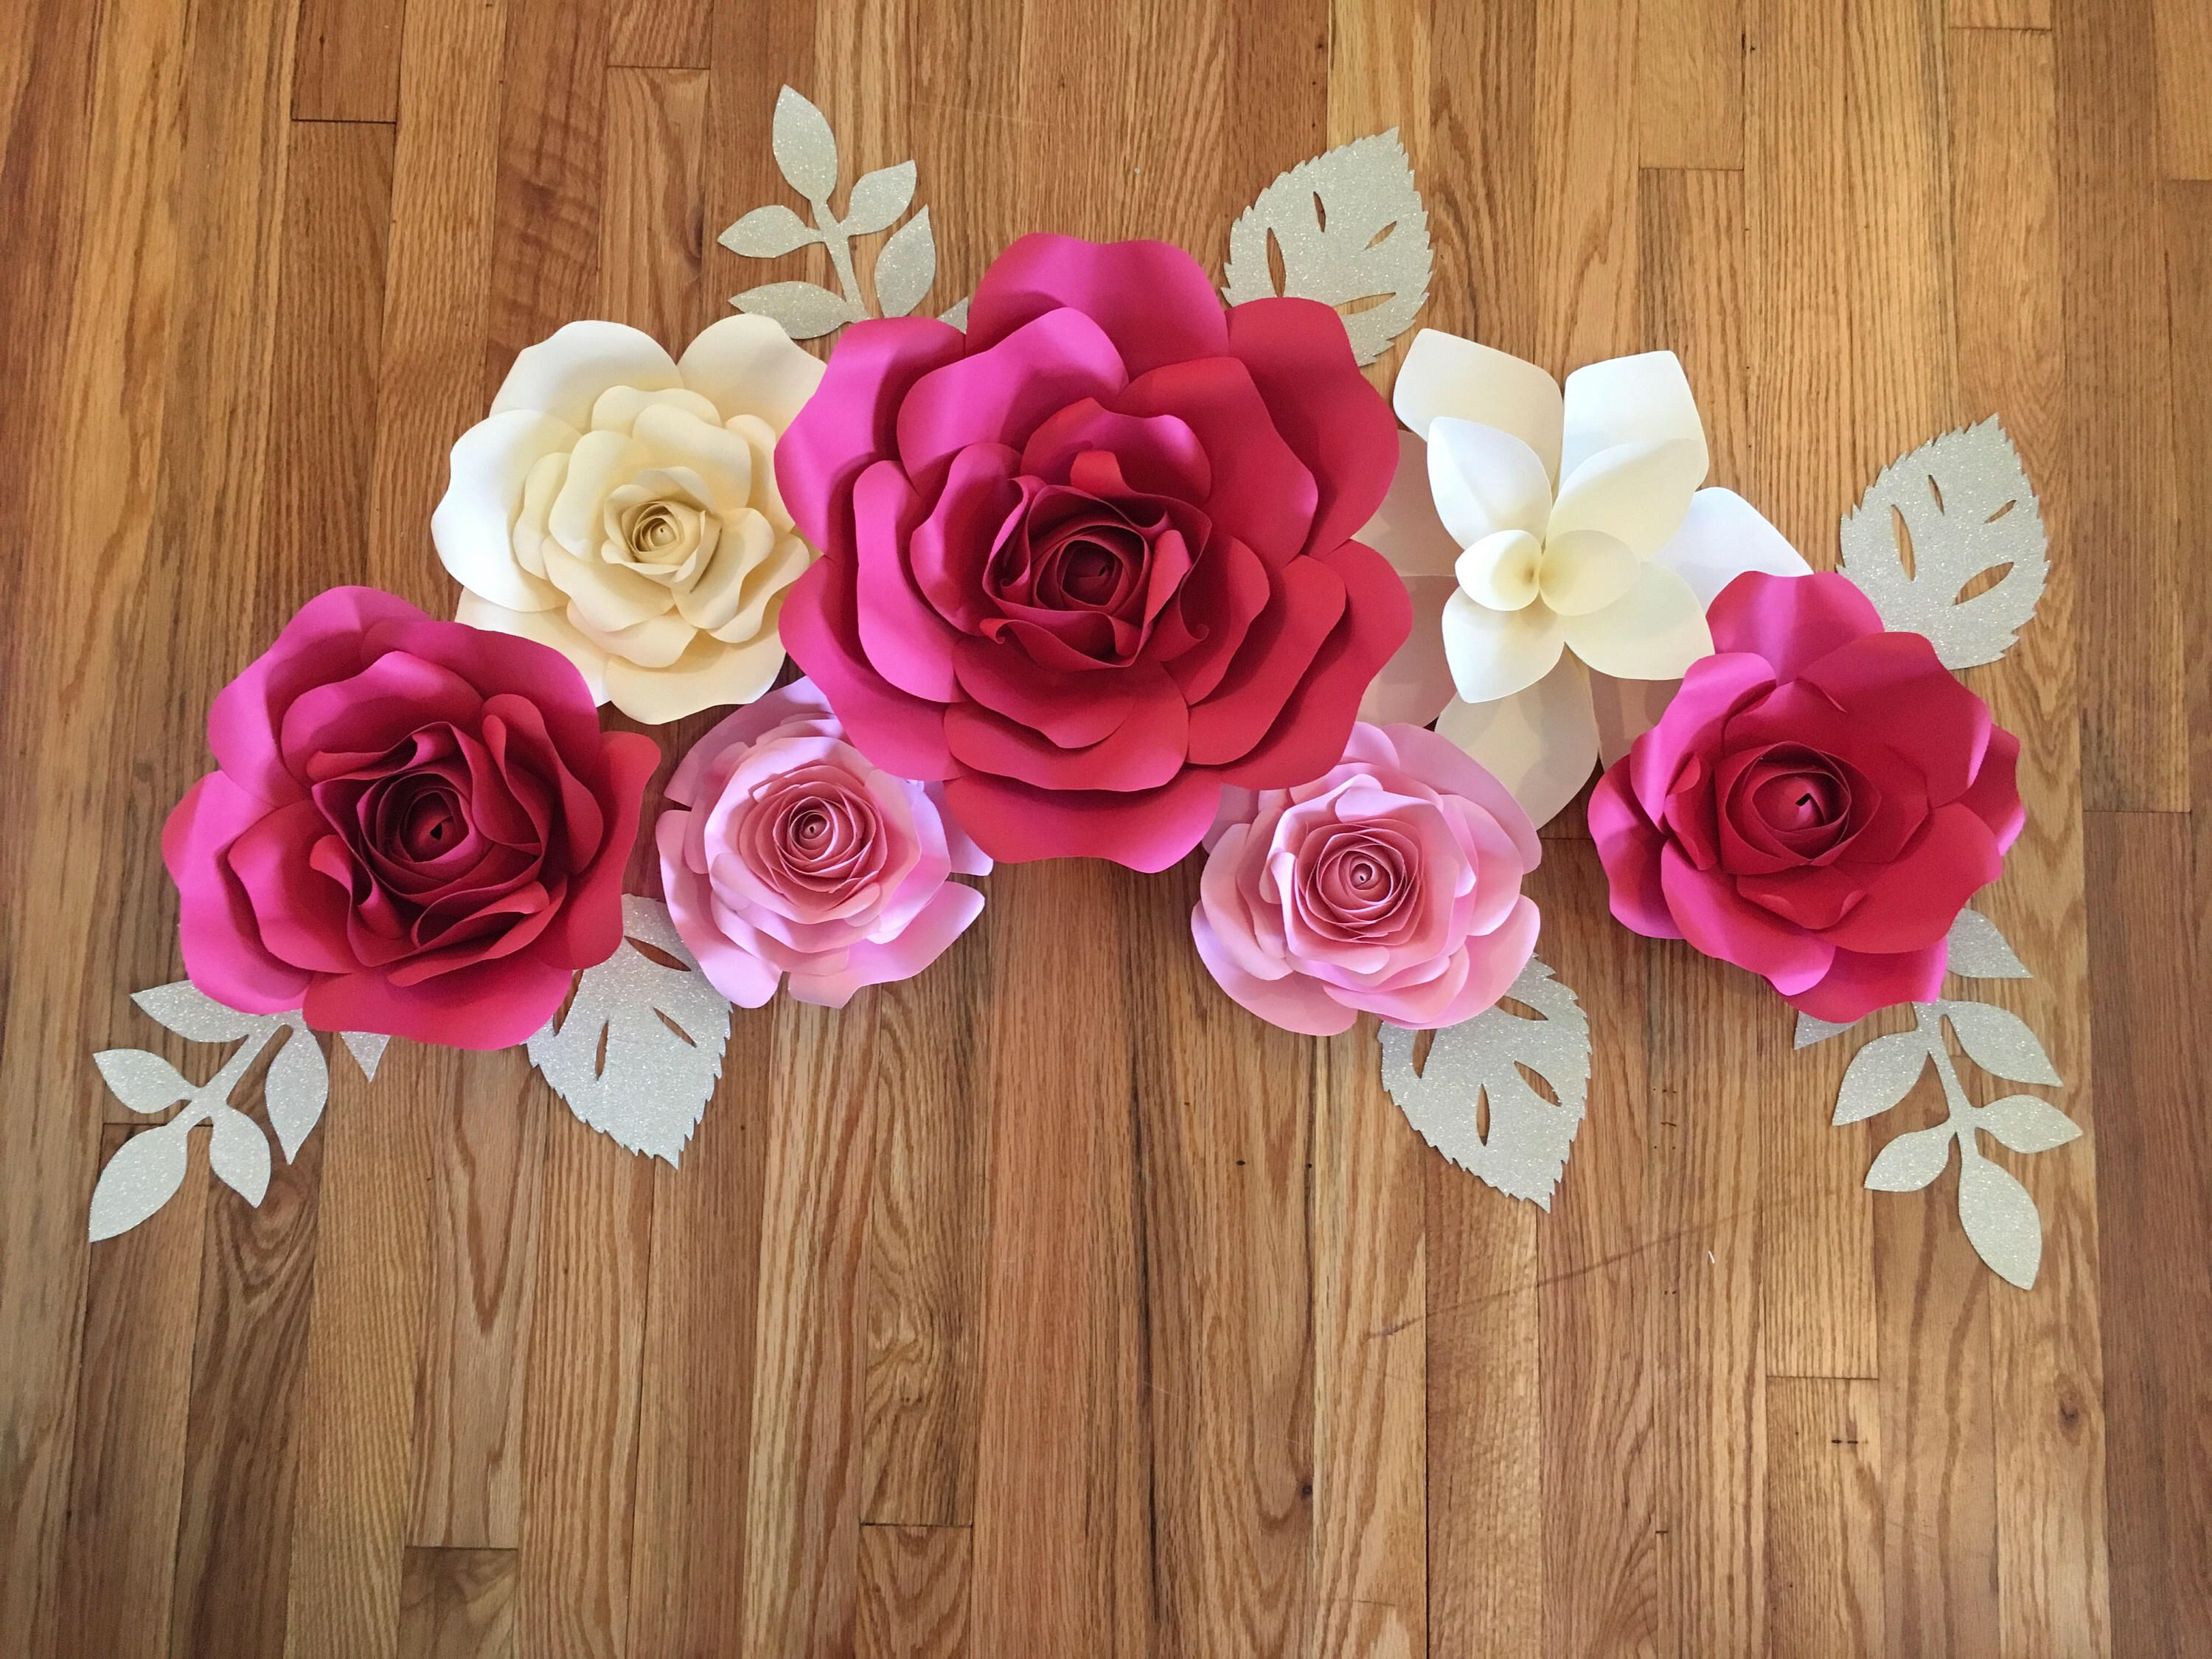 Pin By Jennifer Checo On Jch Paper Designs Paper Flowers Diy